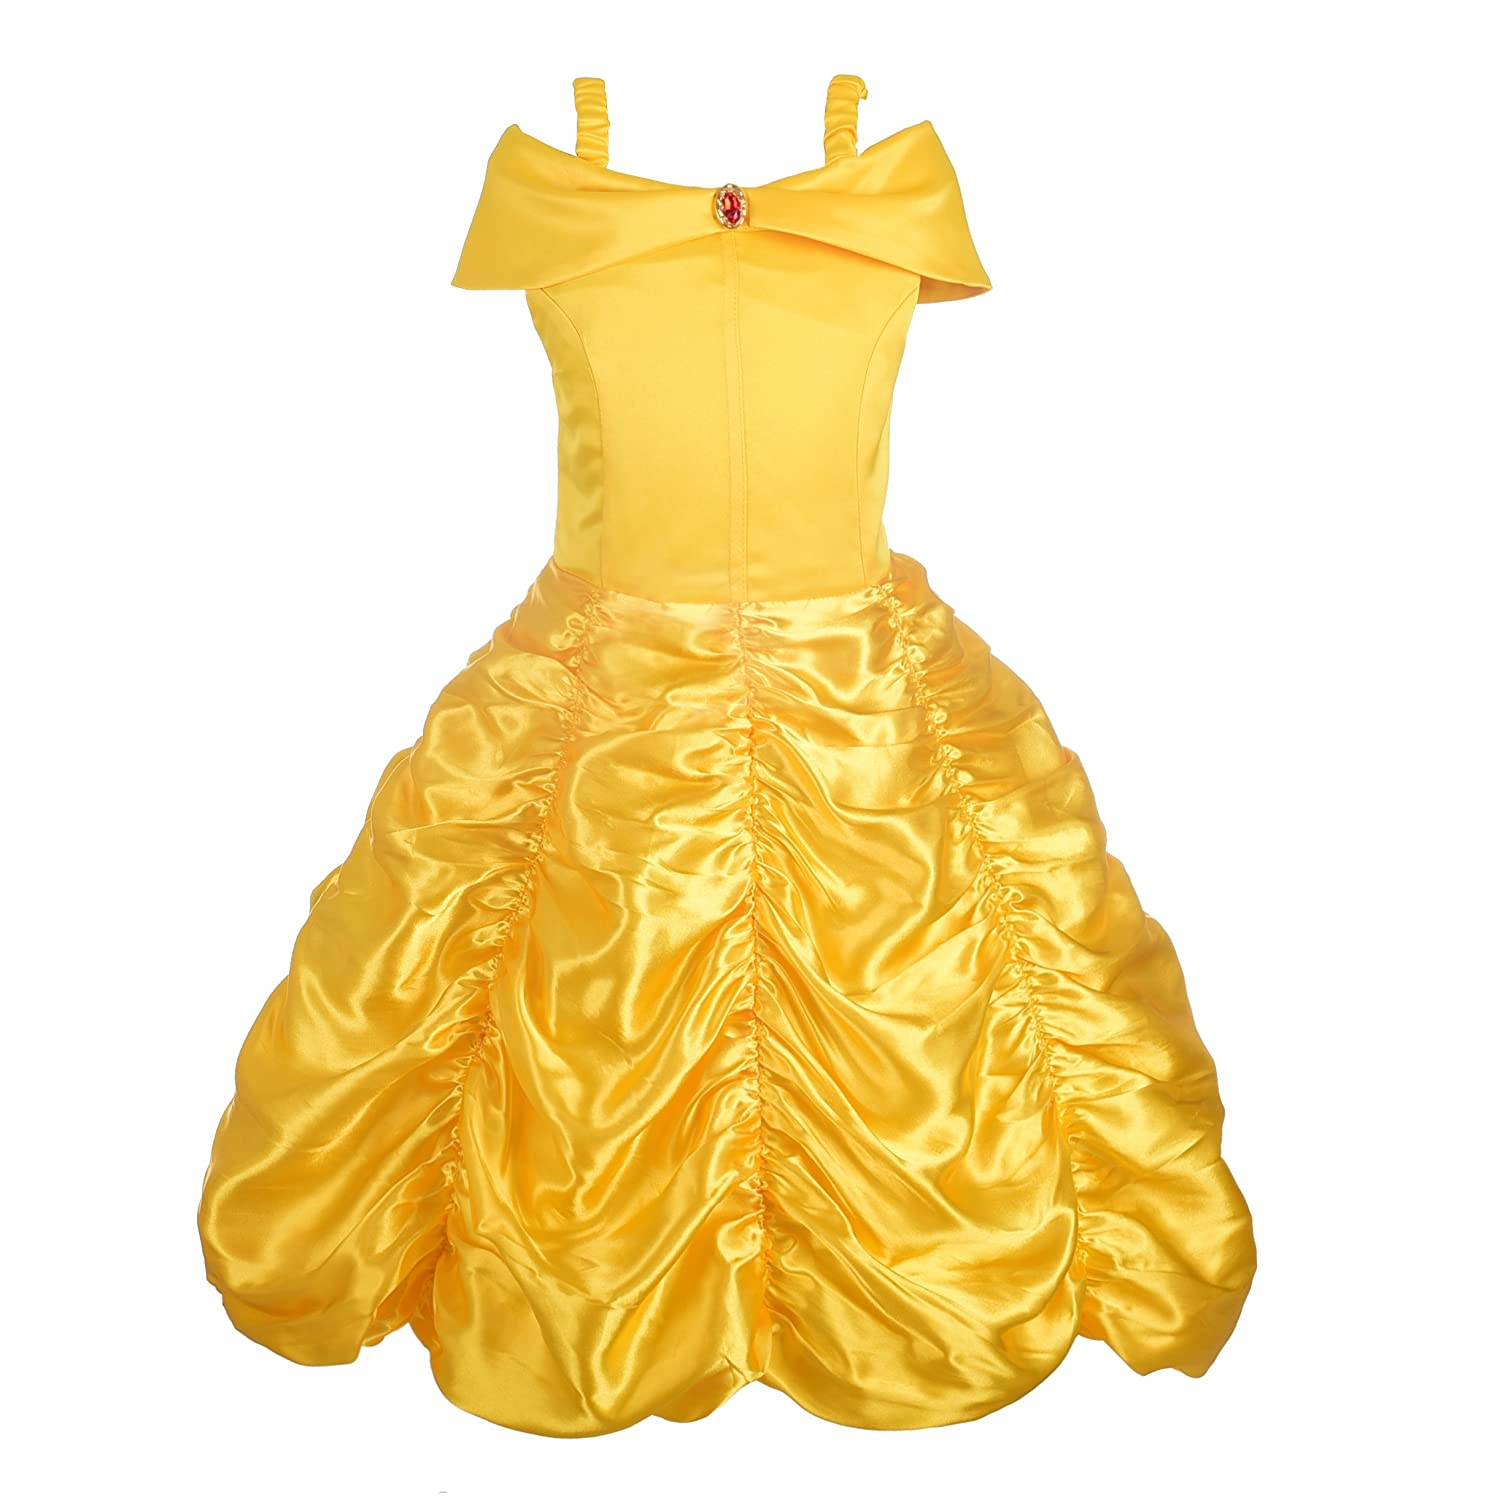 Dressy Daisy Girls' Princess Belle Costumes Princess Dress ... - photo#24